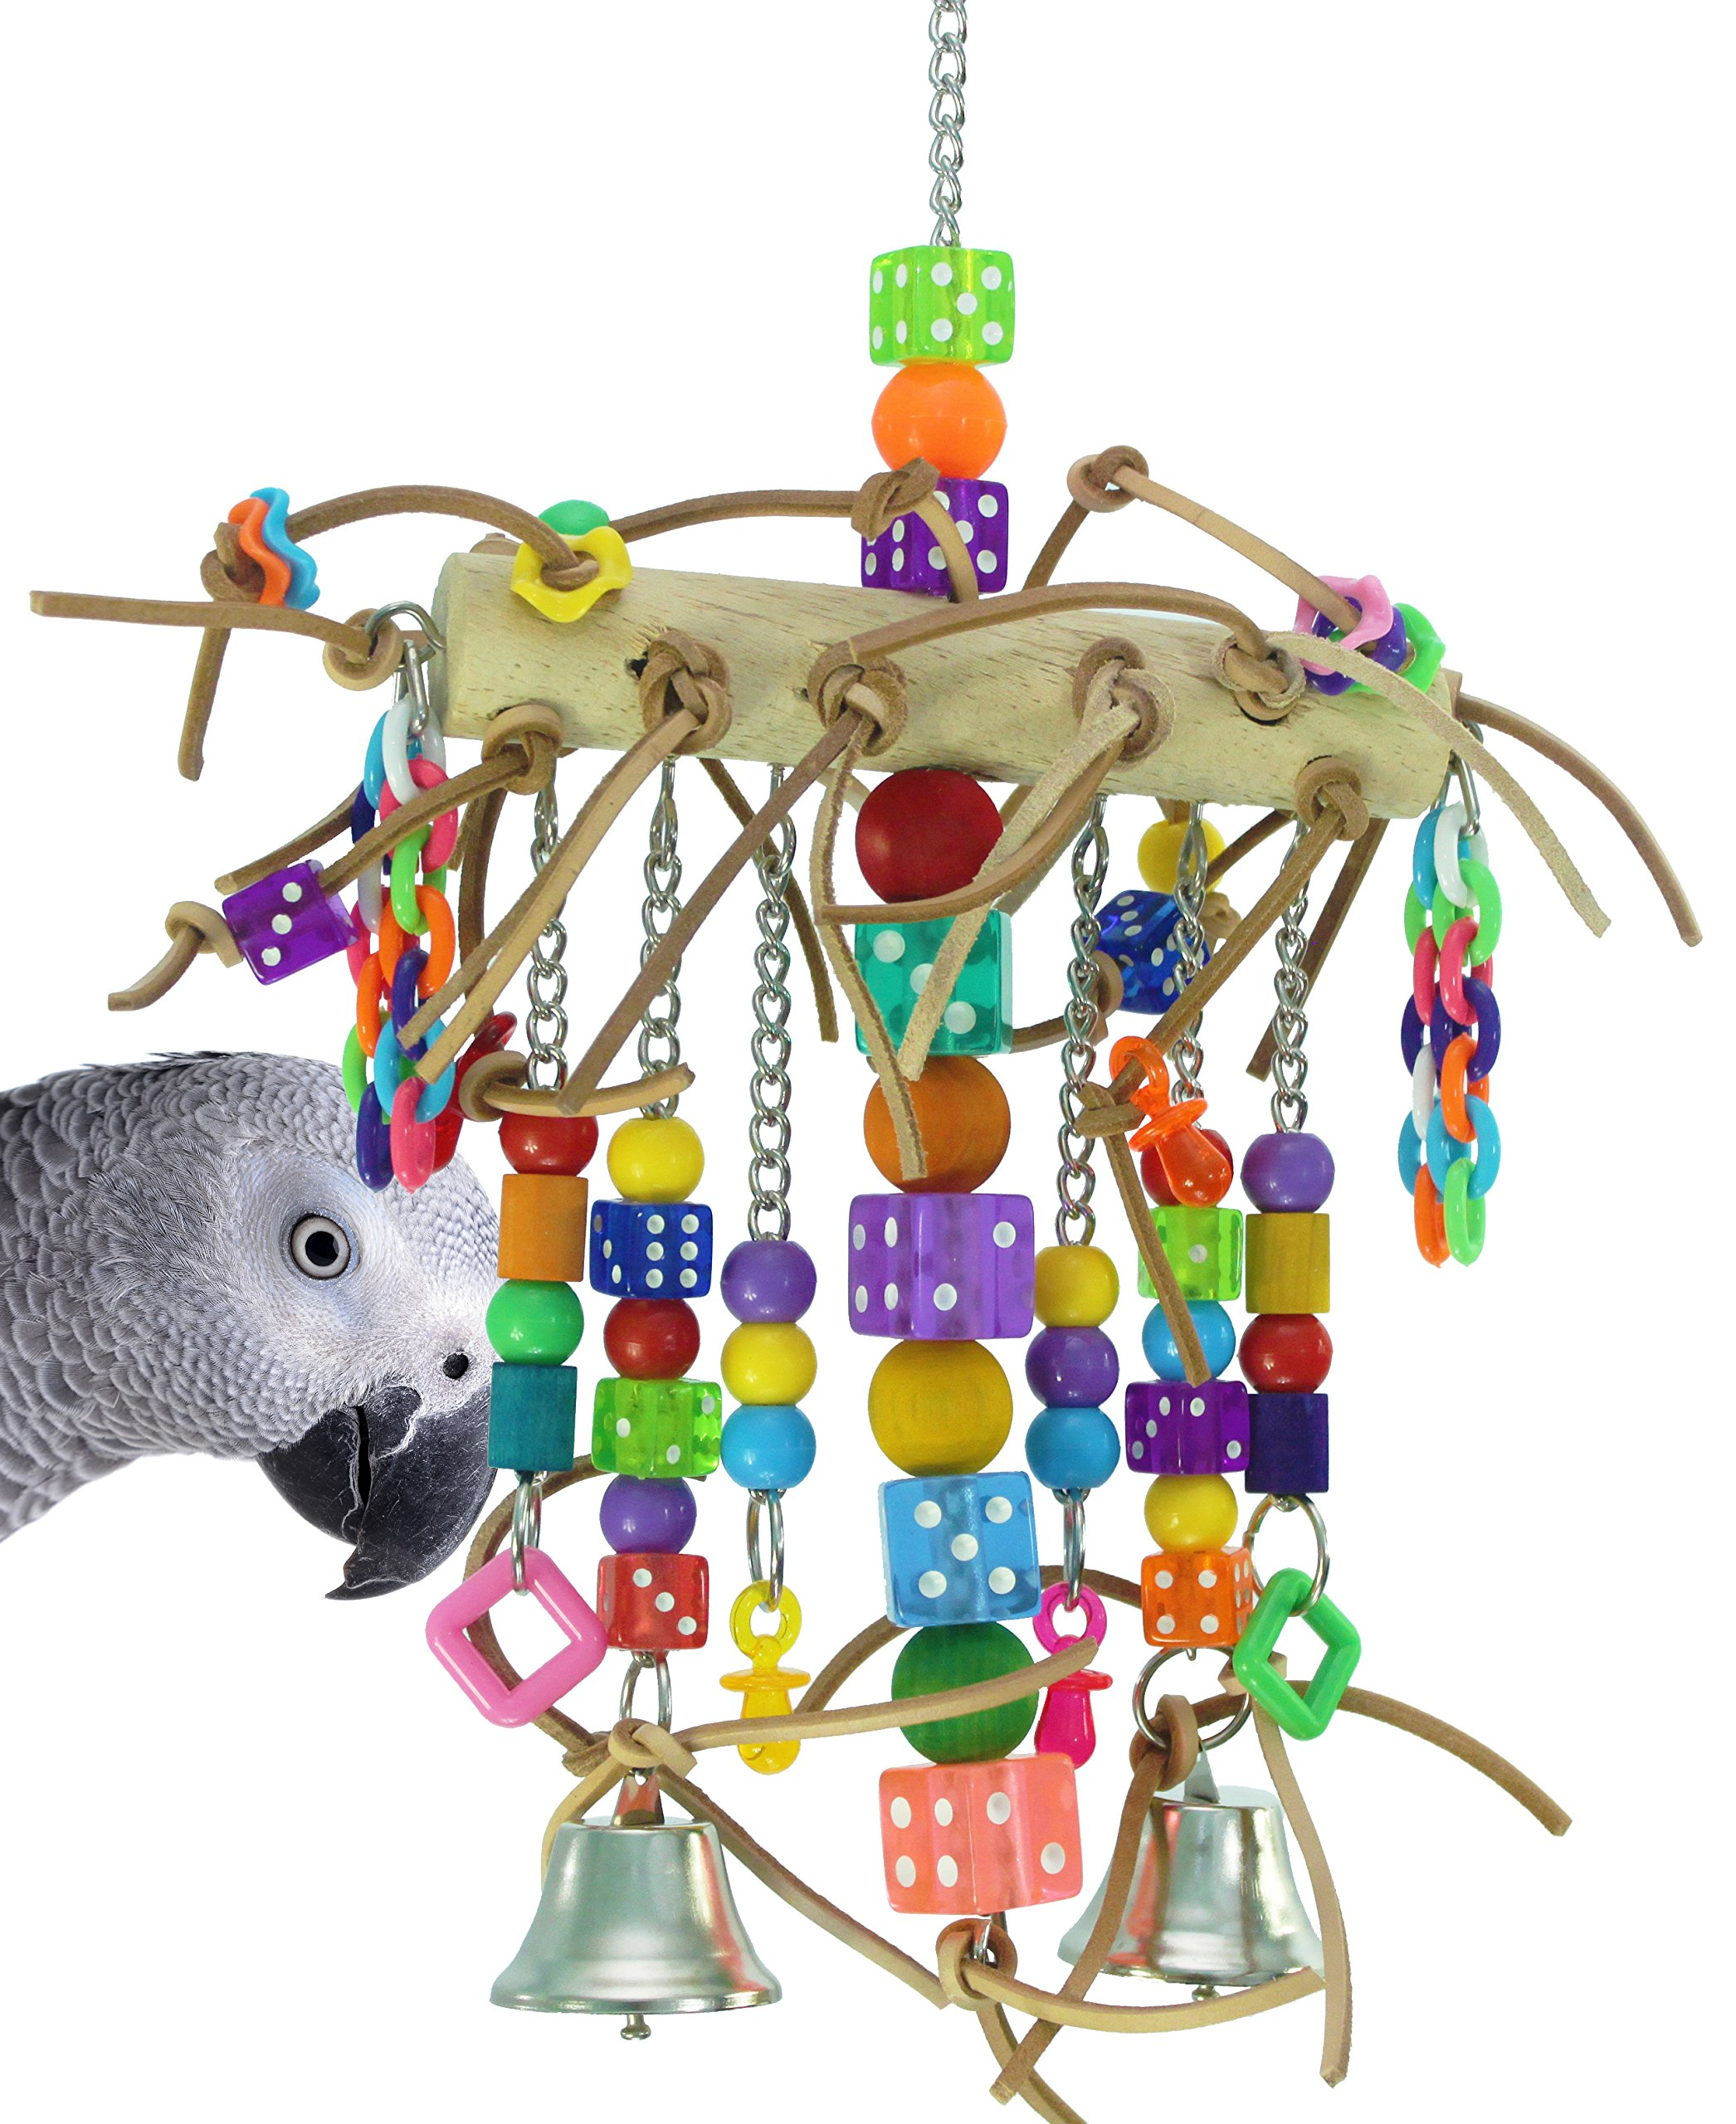 Bonka Bird Toys 1746 Leather Chain Waterfall Tower Toy Rope Parrot Cage Dice Cages African Grey Amazon Conure Wooden Perch Aviary Swing by Bonka Bird Toys